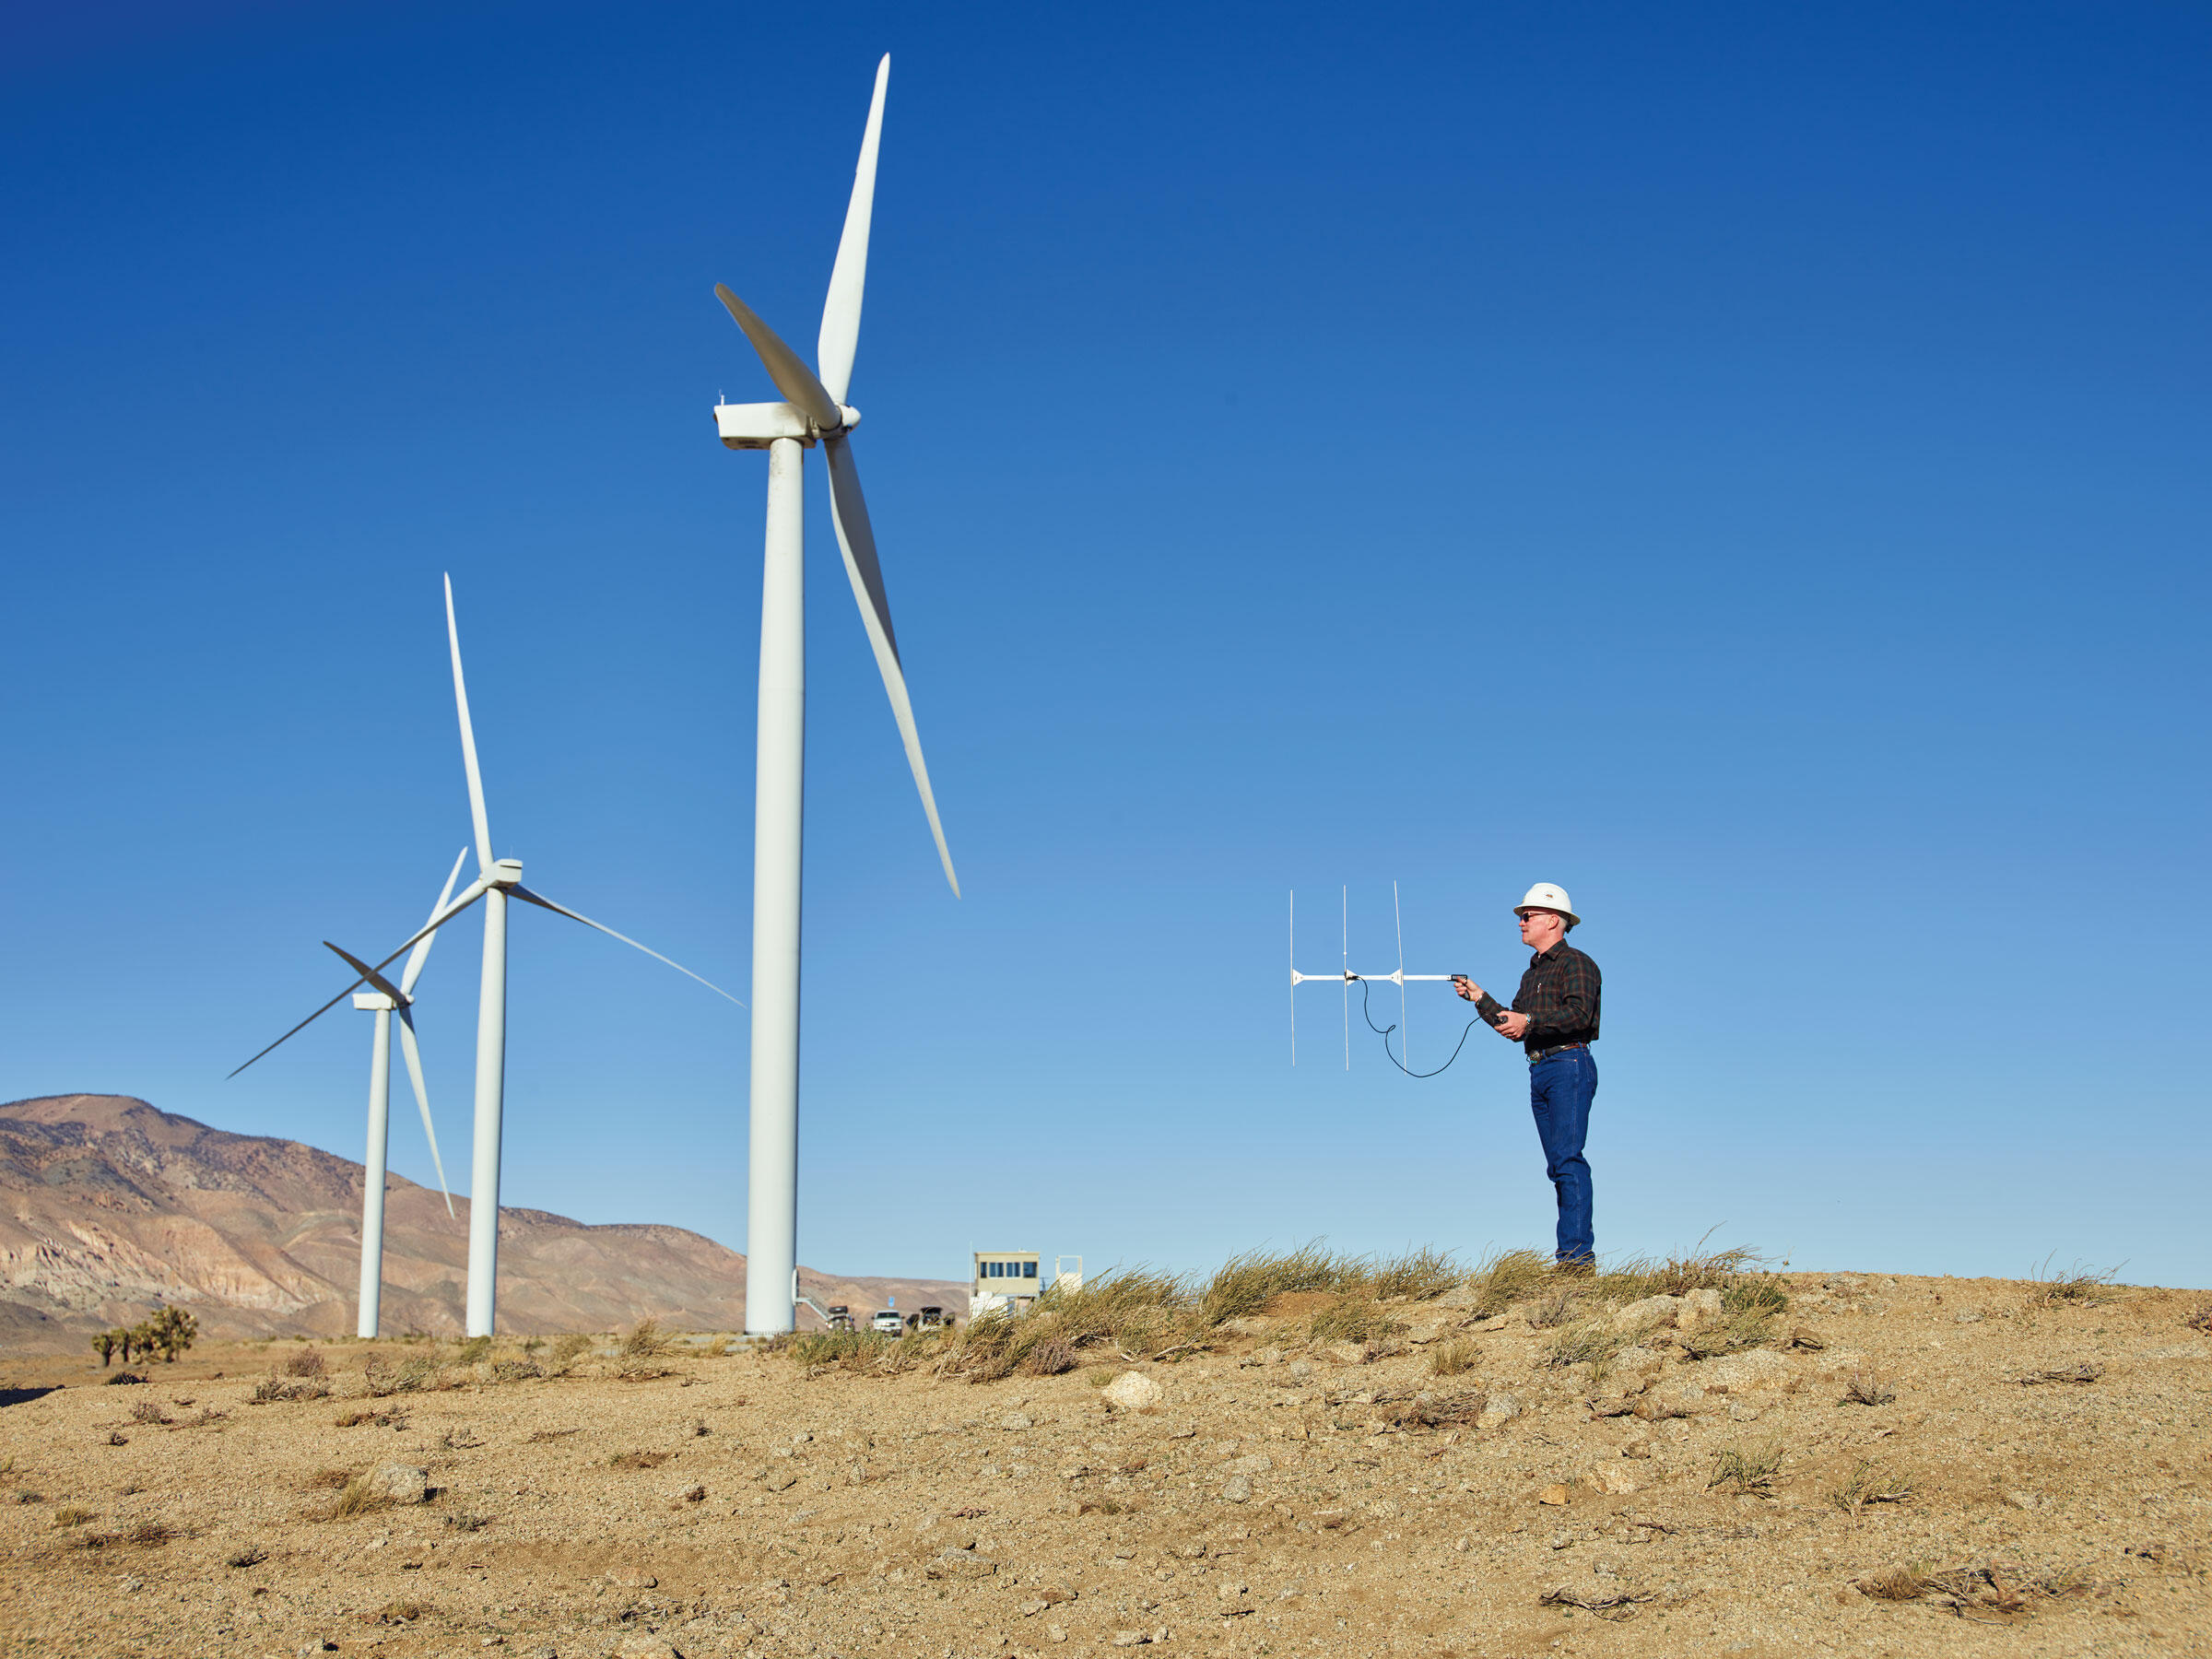 Energy companies like Terra-Gen in California are adopting bird-safe technologies to uphold protections set by the Migratory Bird Treaty Act. Spencer Lowell